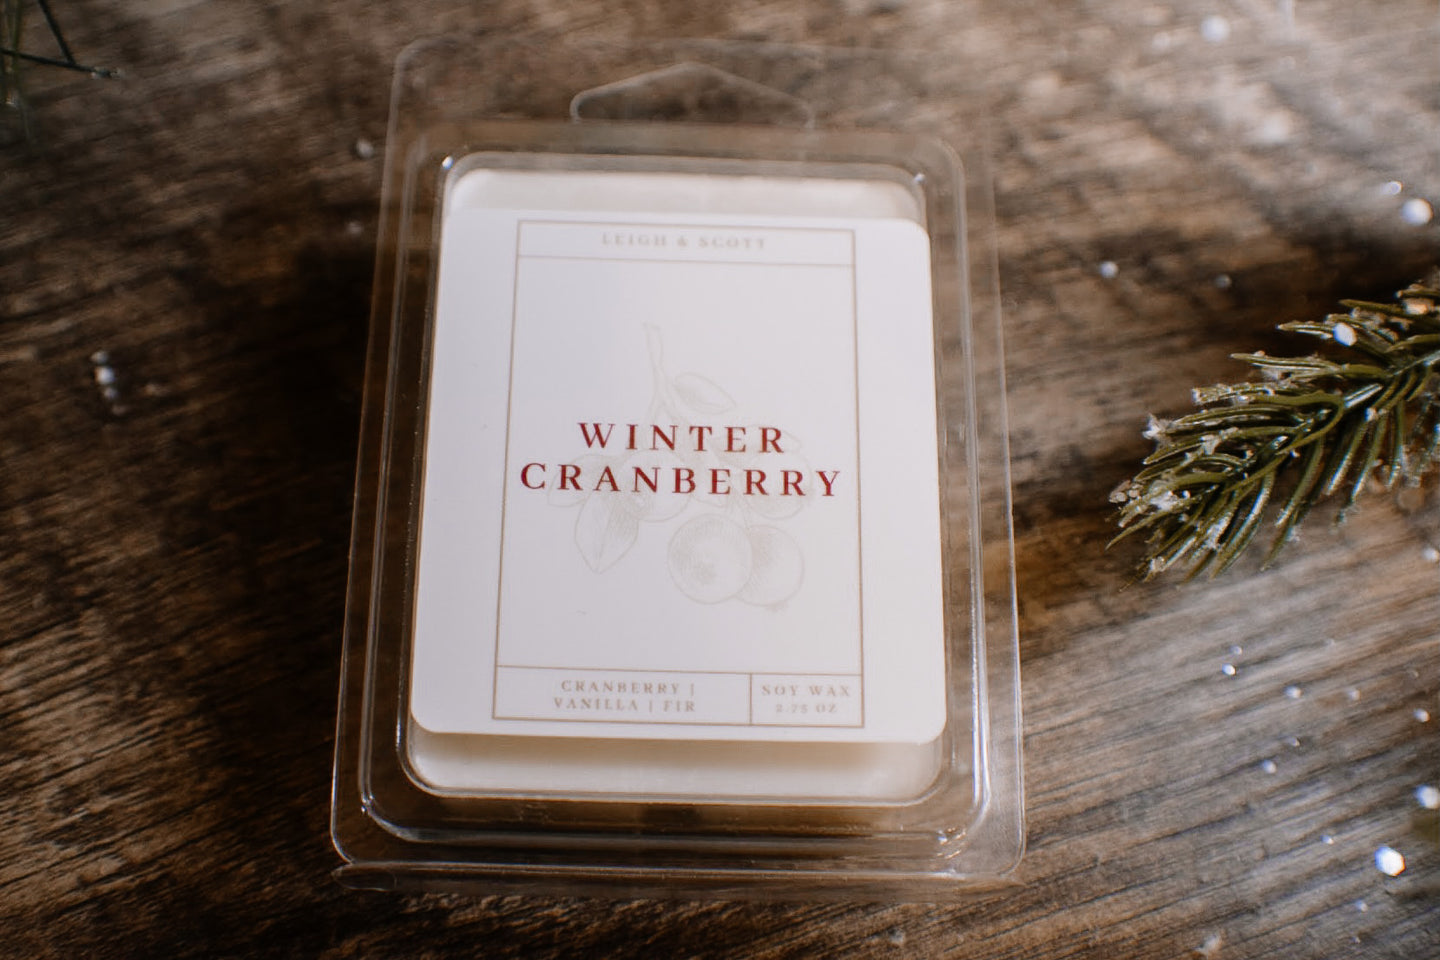 Winter Cranberry Wax Melt